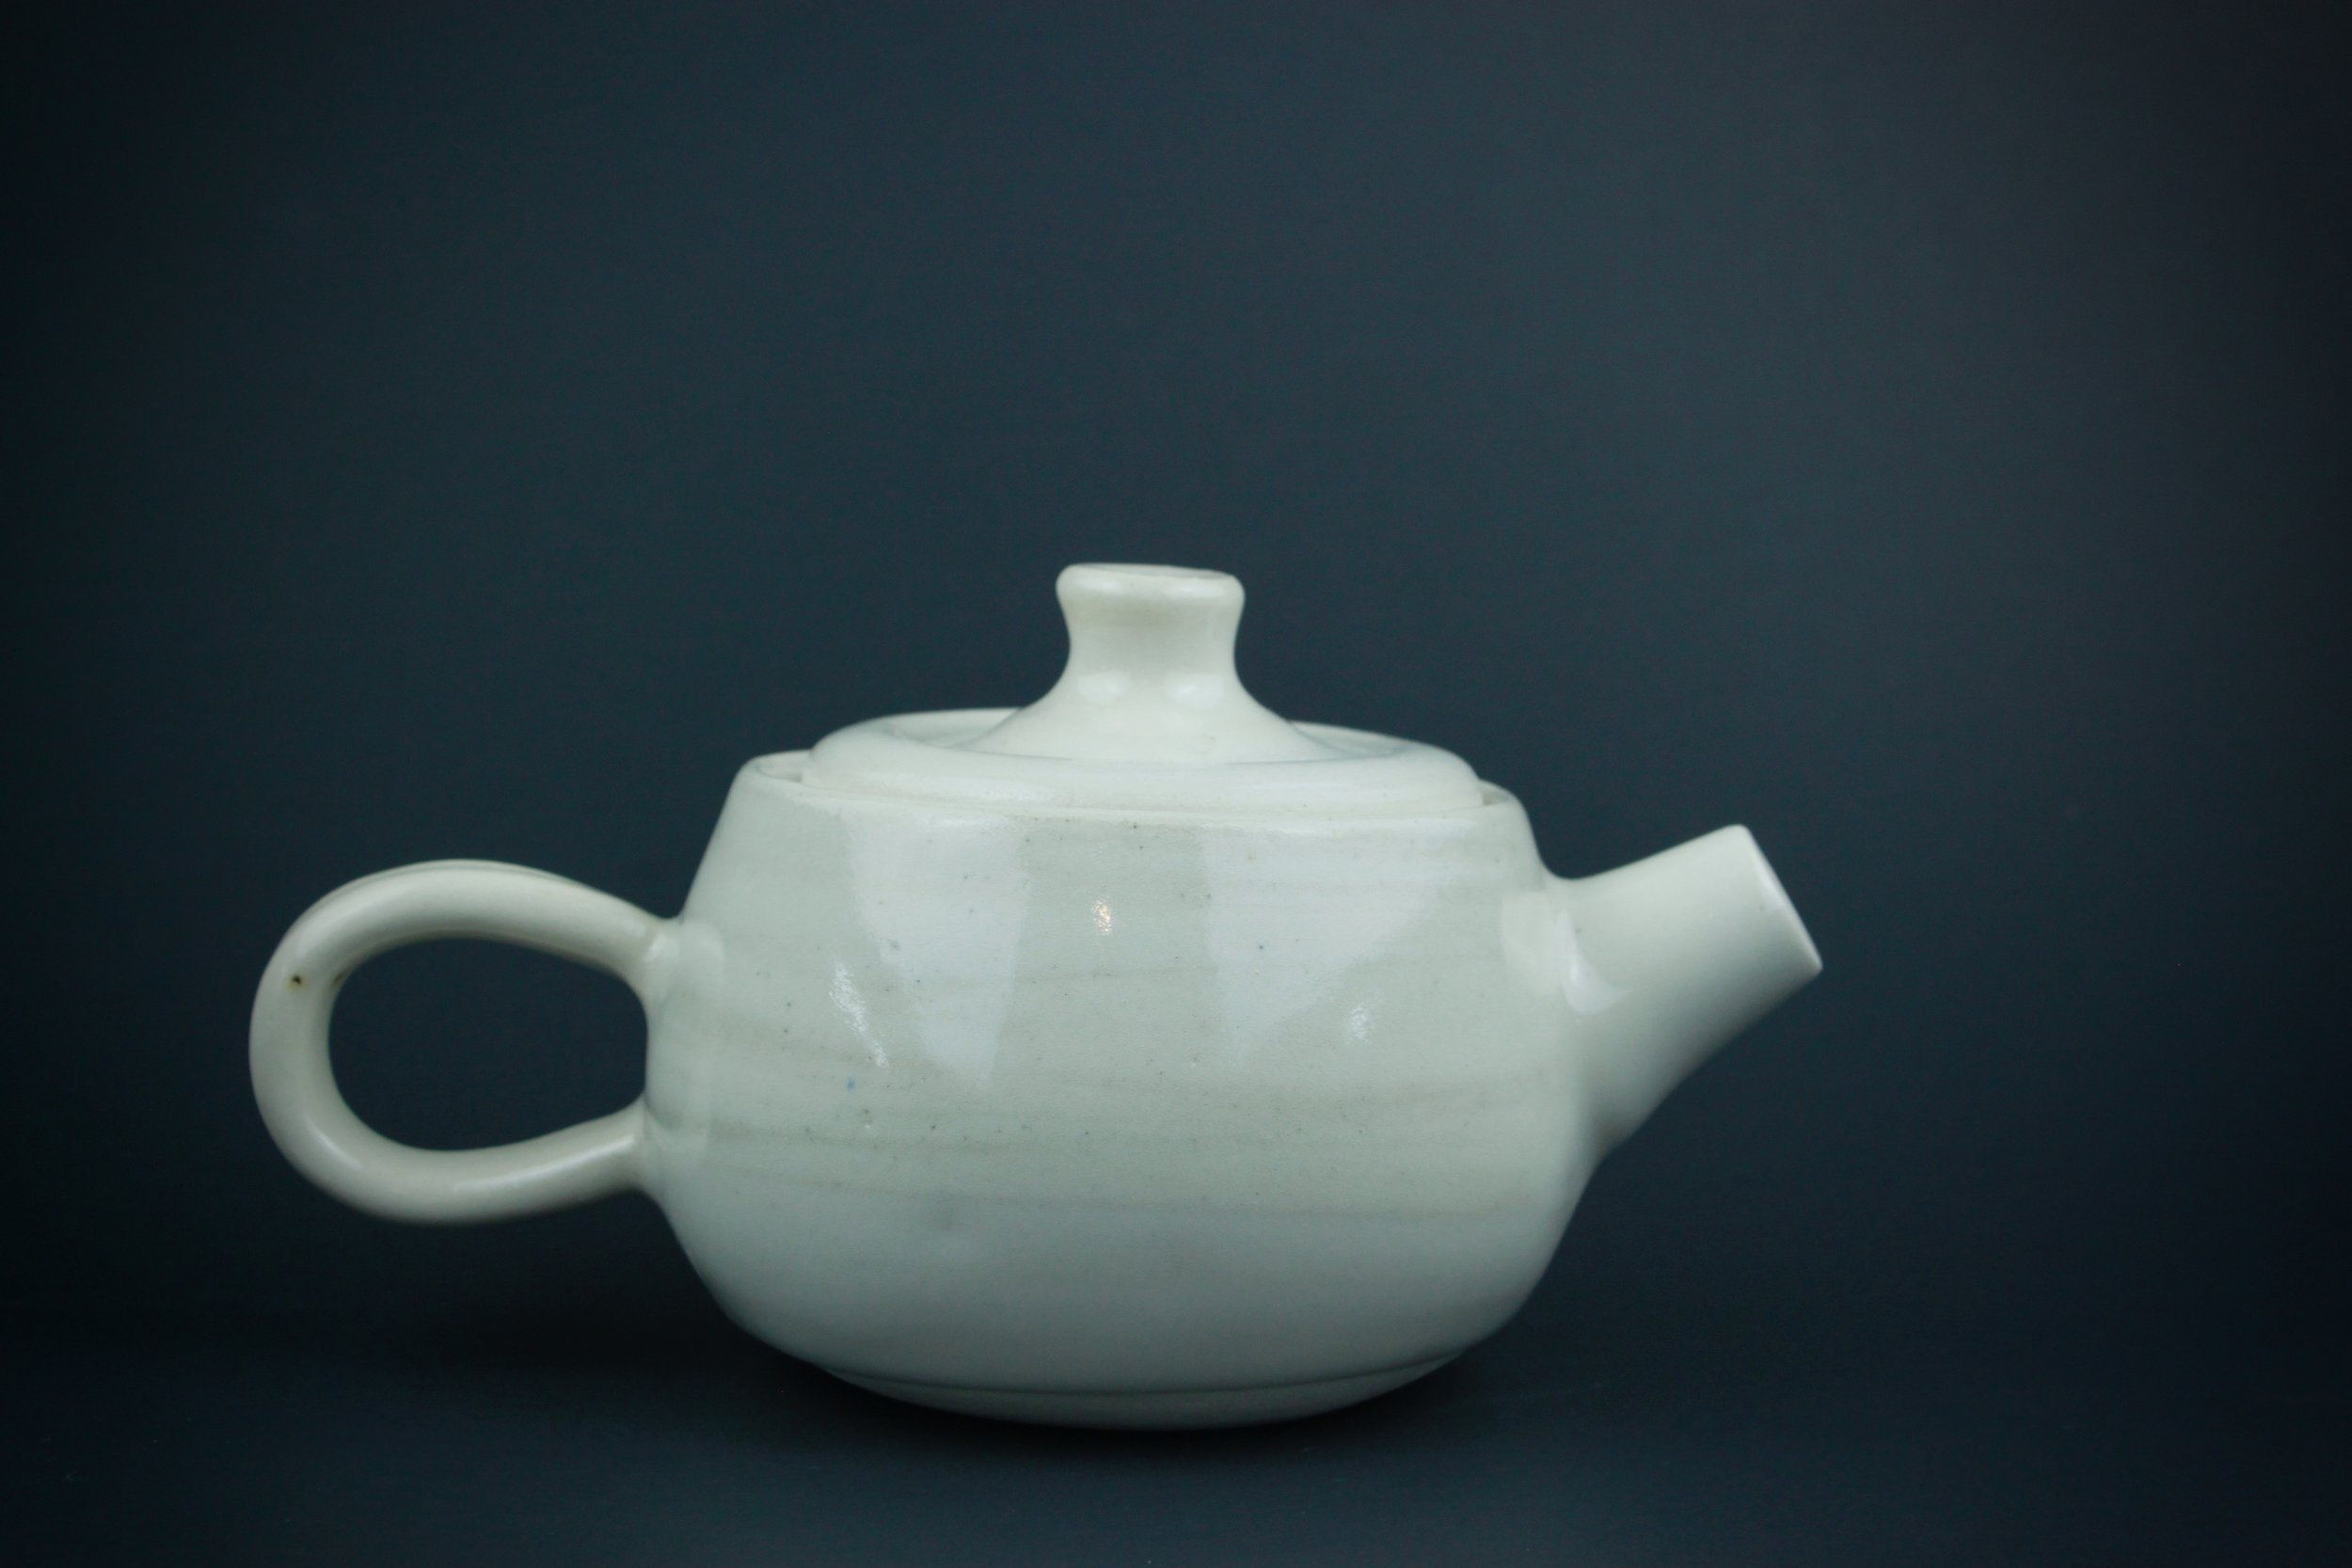 Dimple: Wheel thrown teapot. Approx. 4.5 inches.